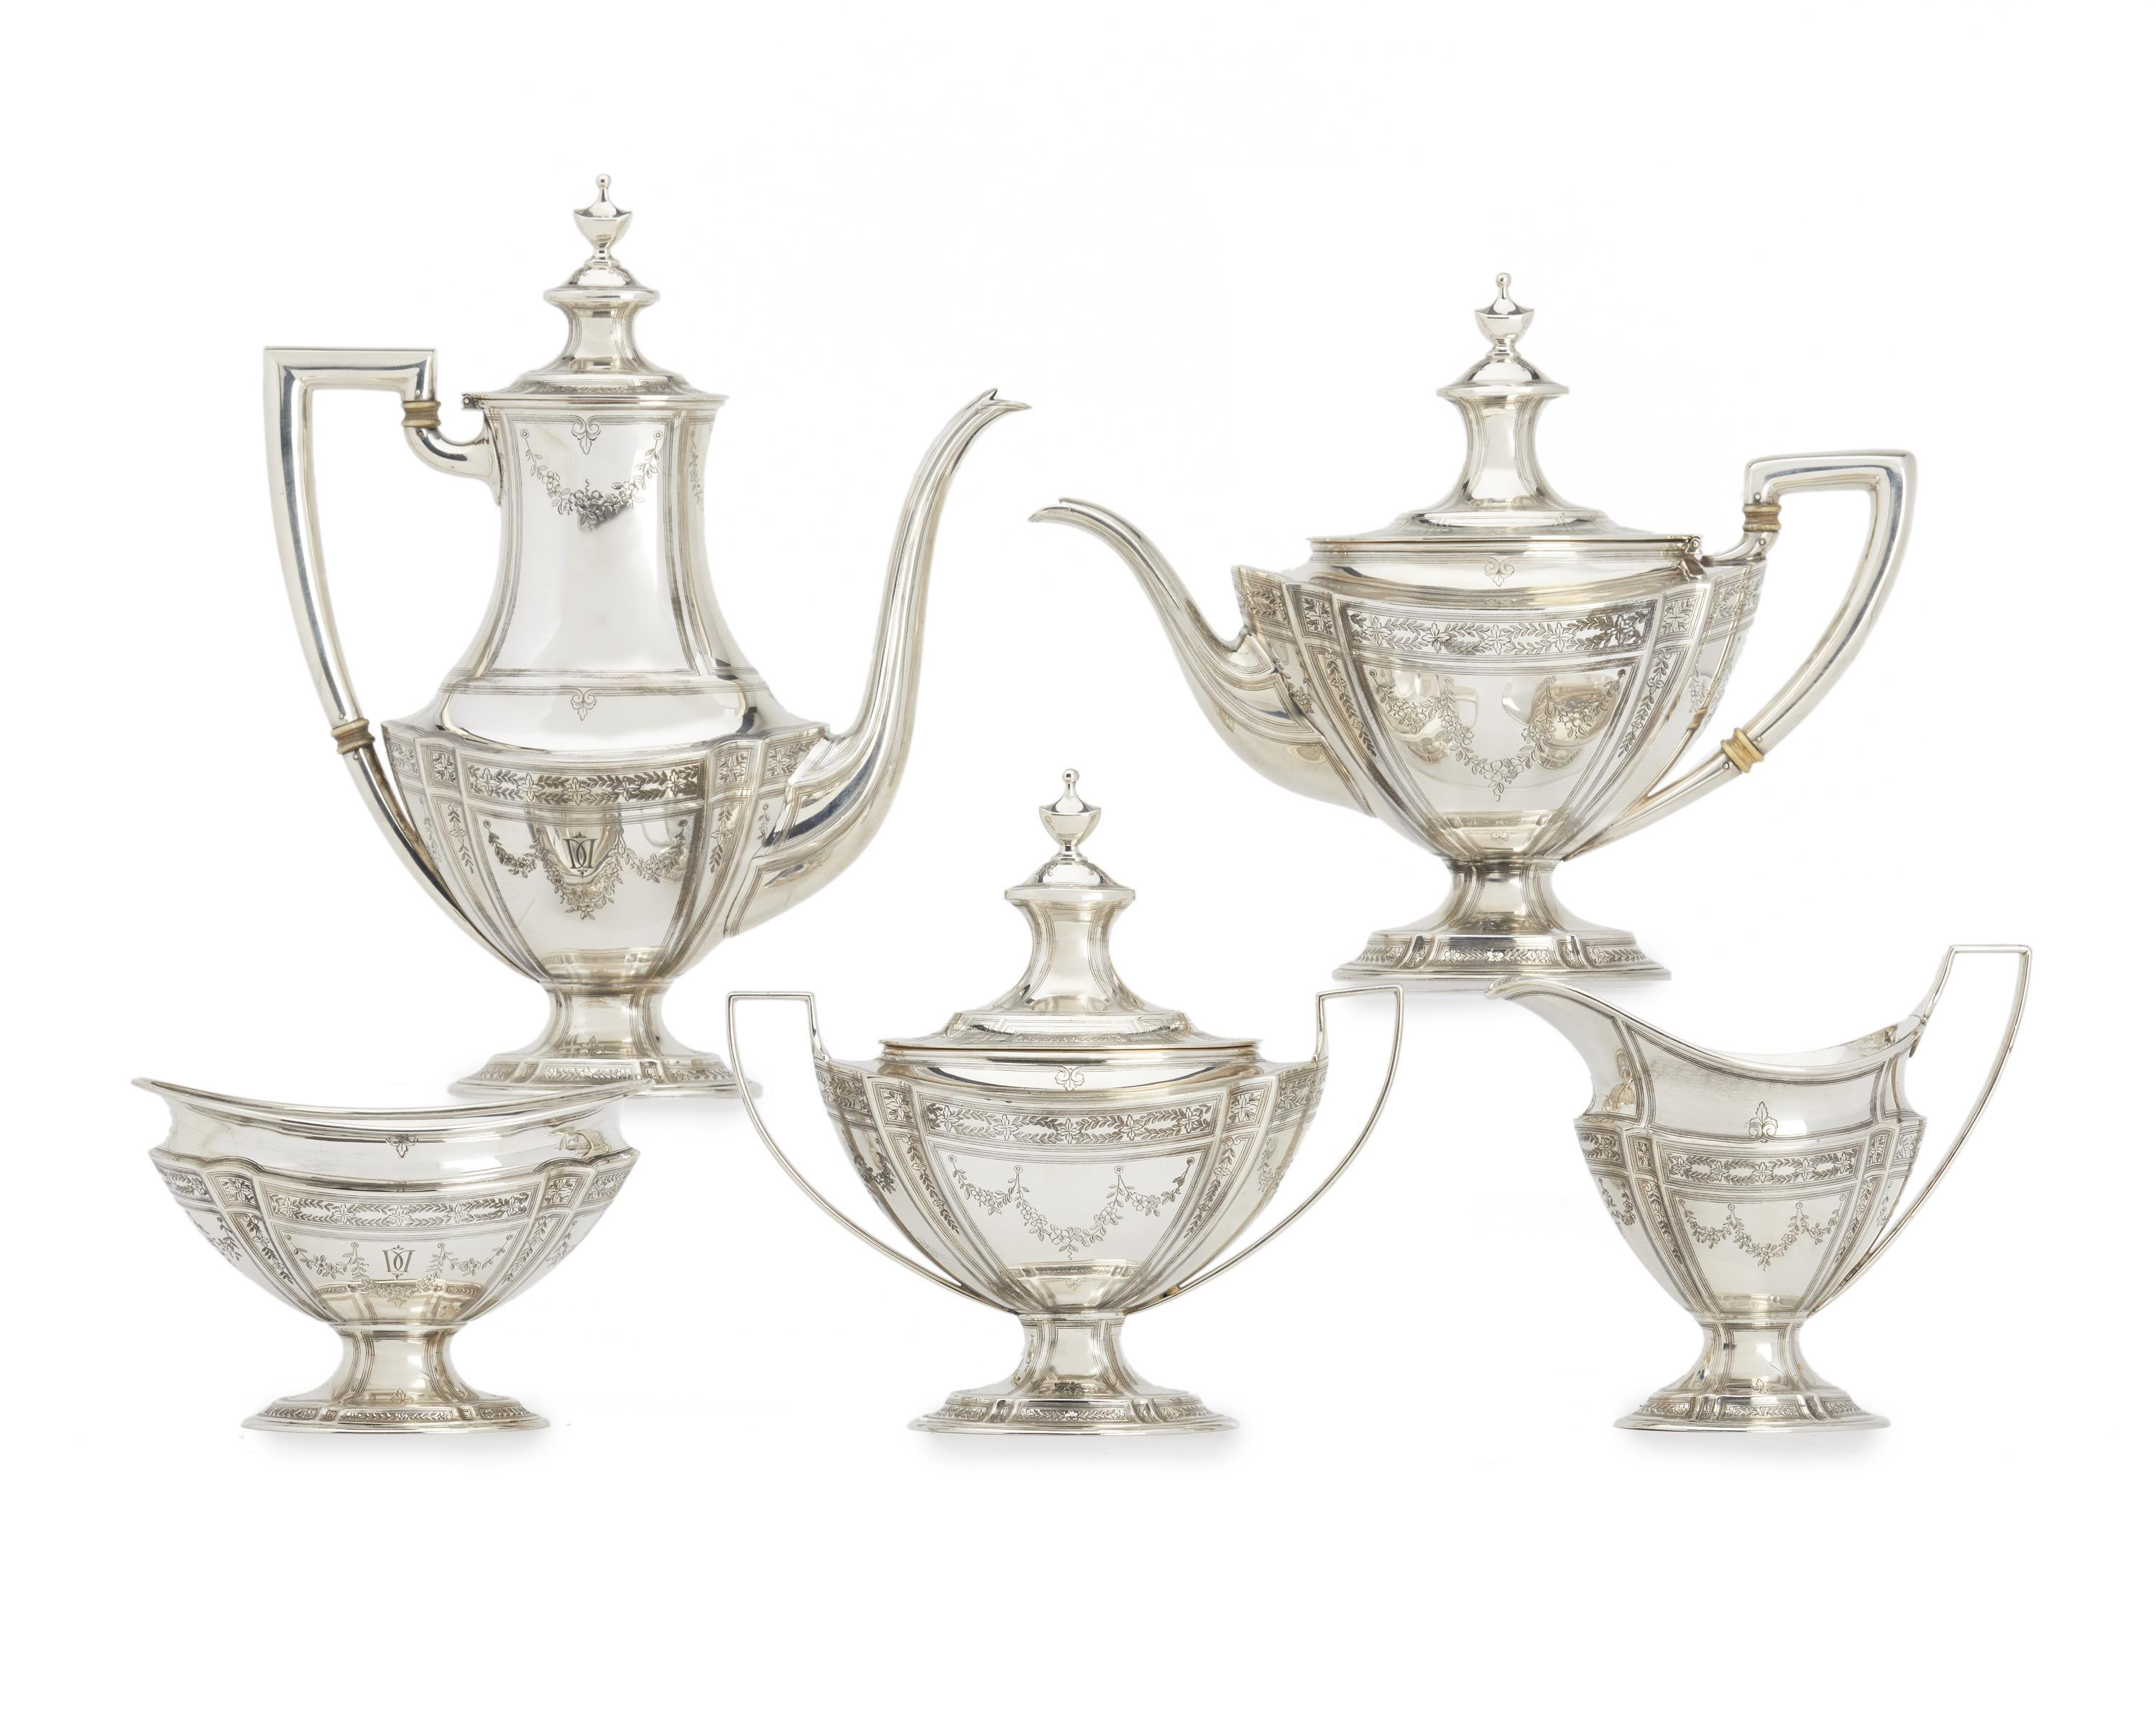 A Tiffany & Co. sterling silver coffee and tea service